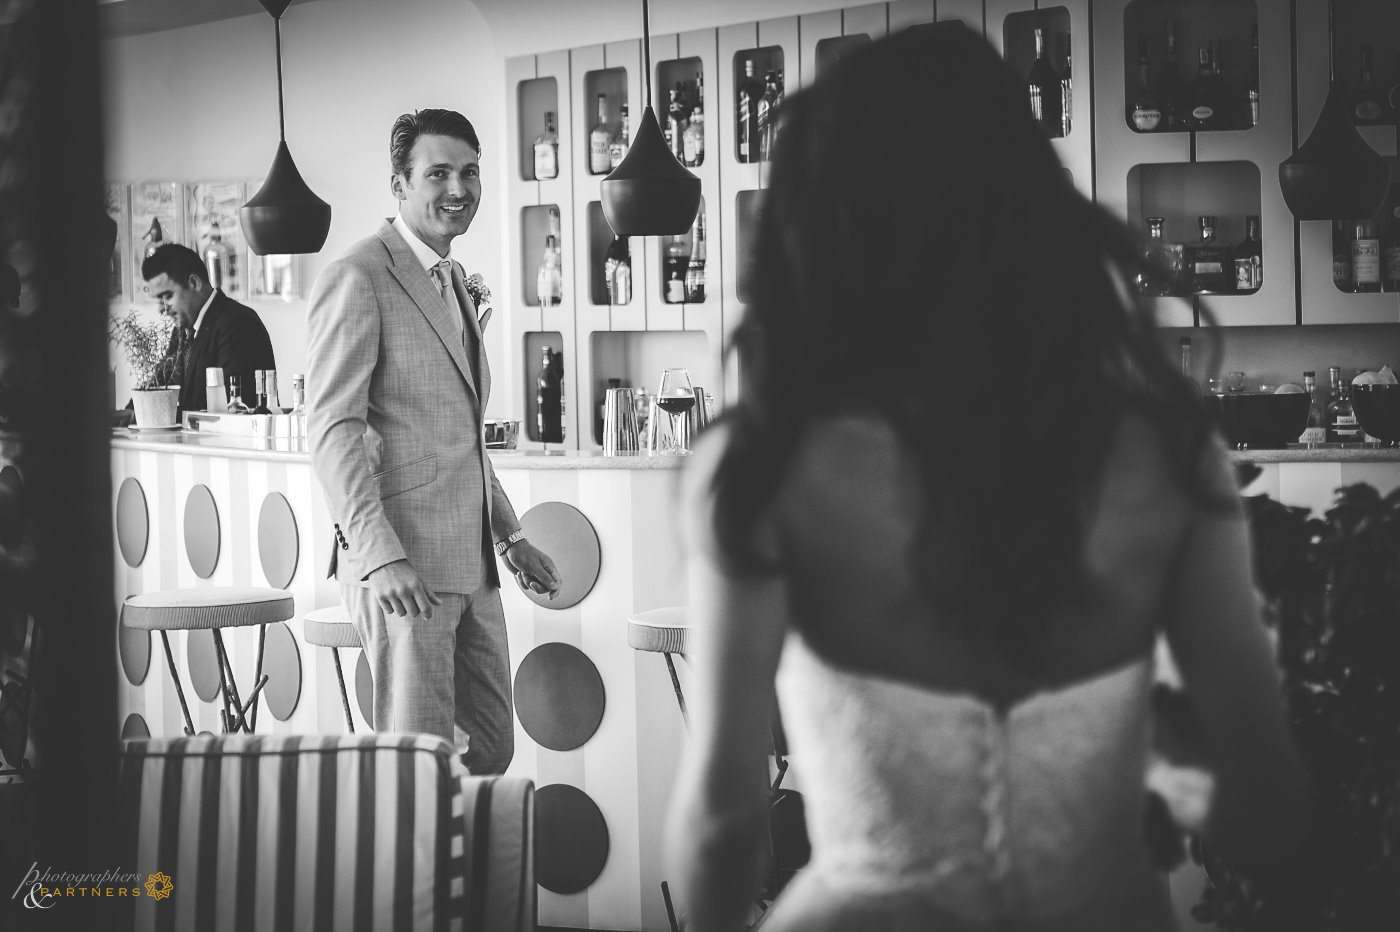 photography_weddings_capri_03.jpg